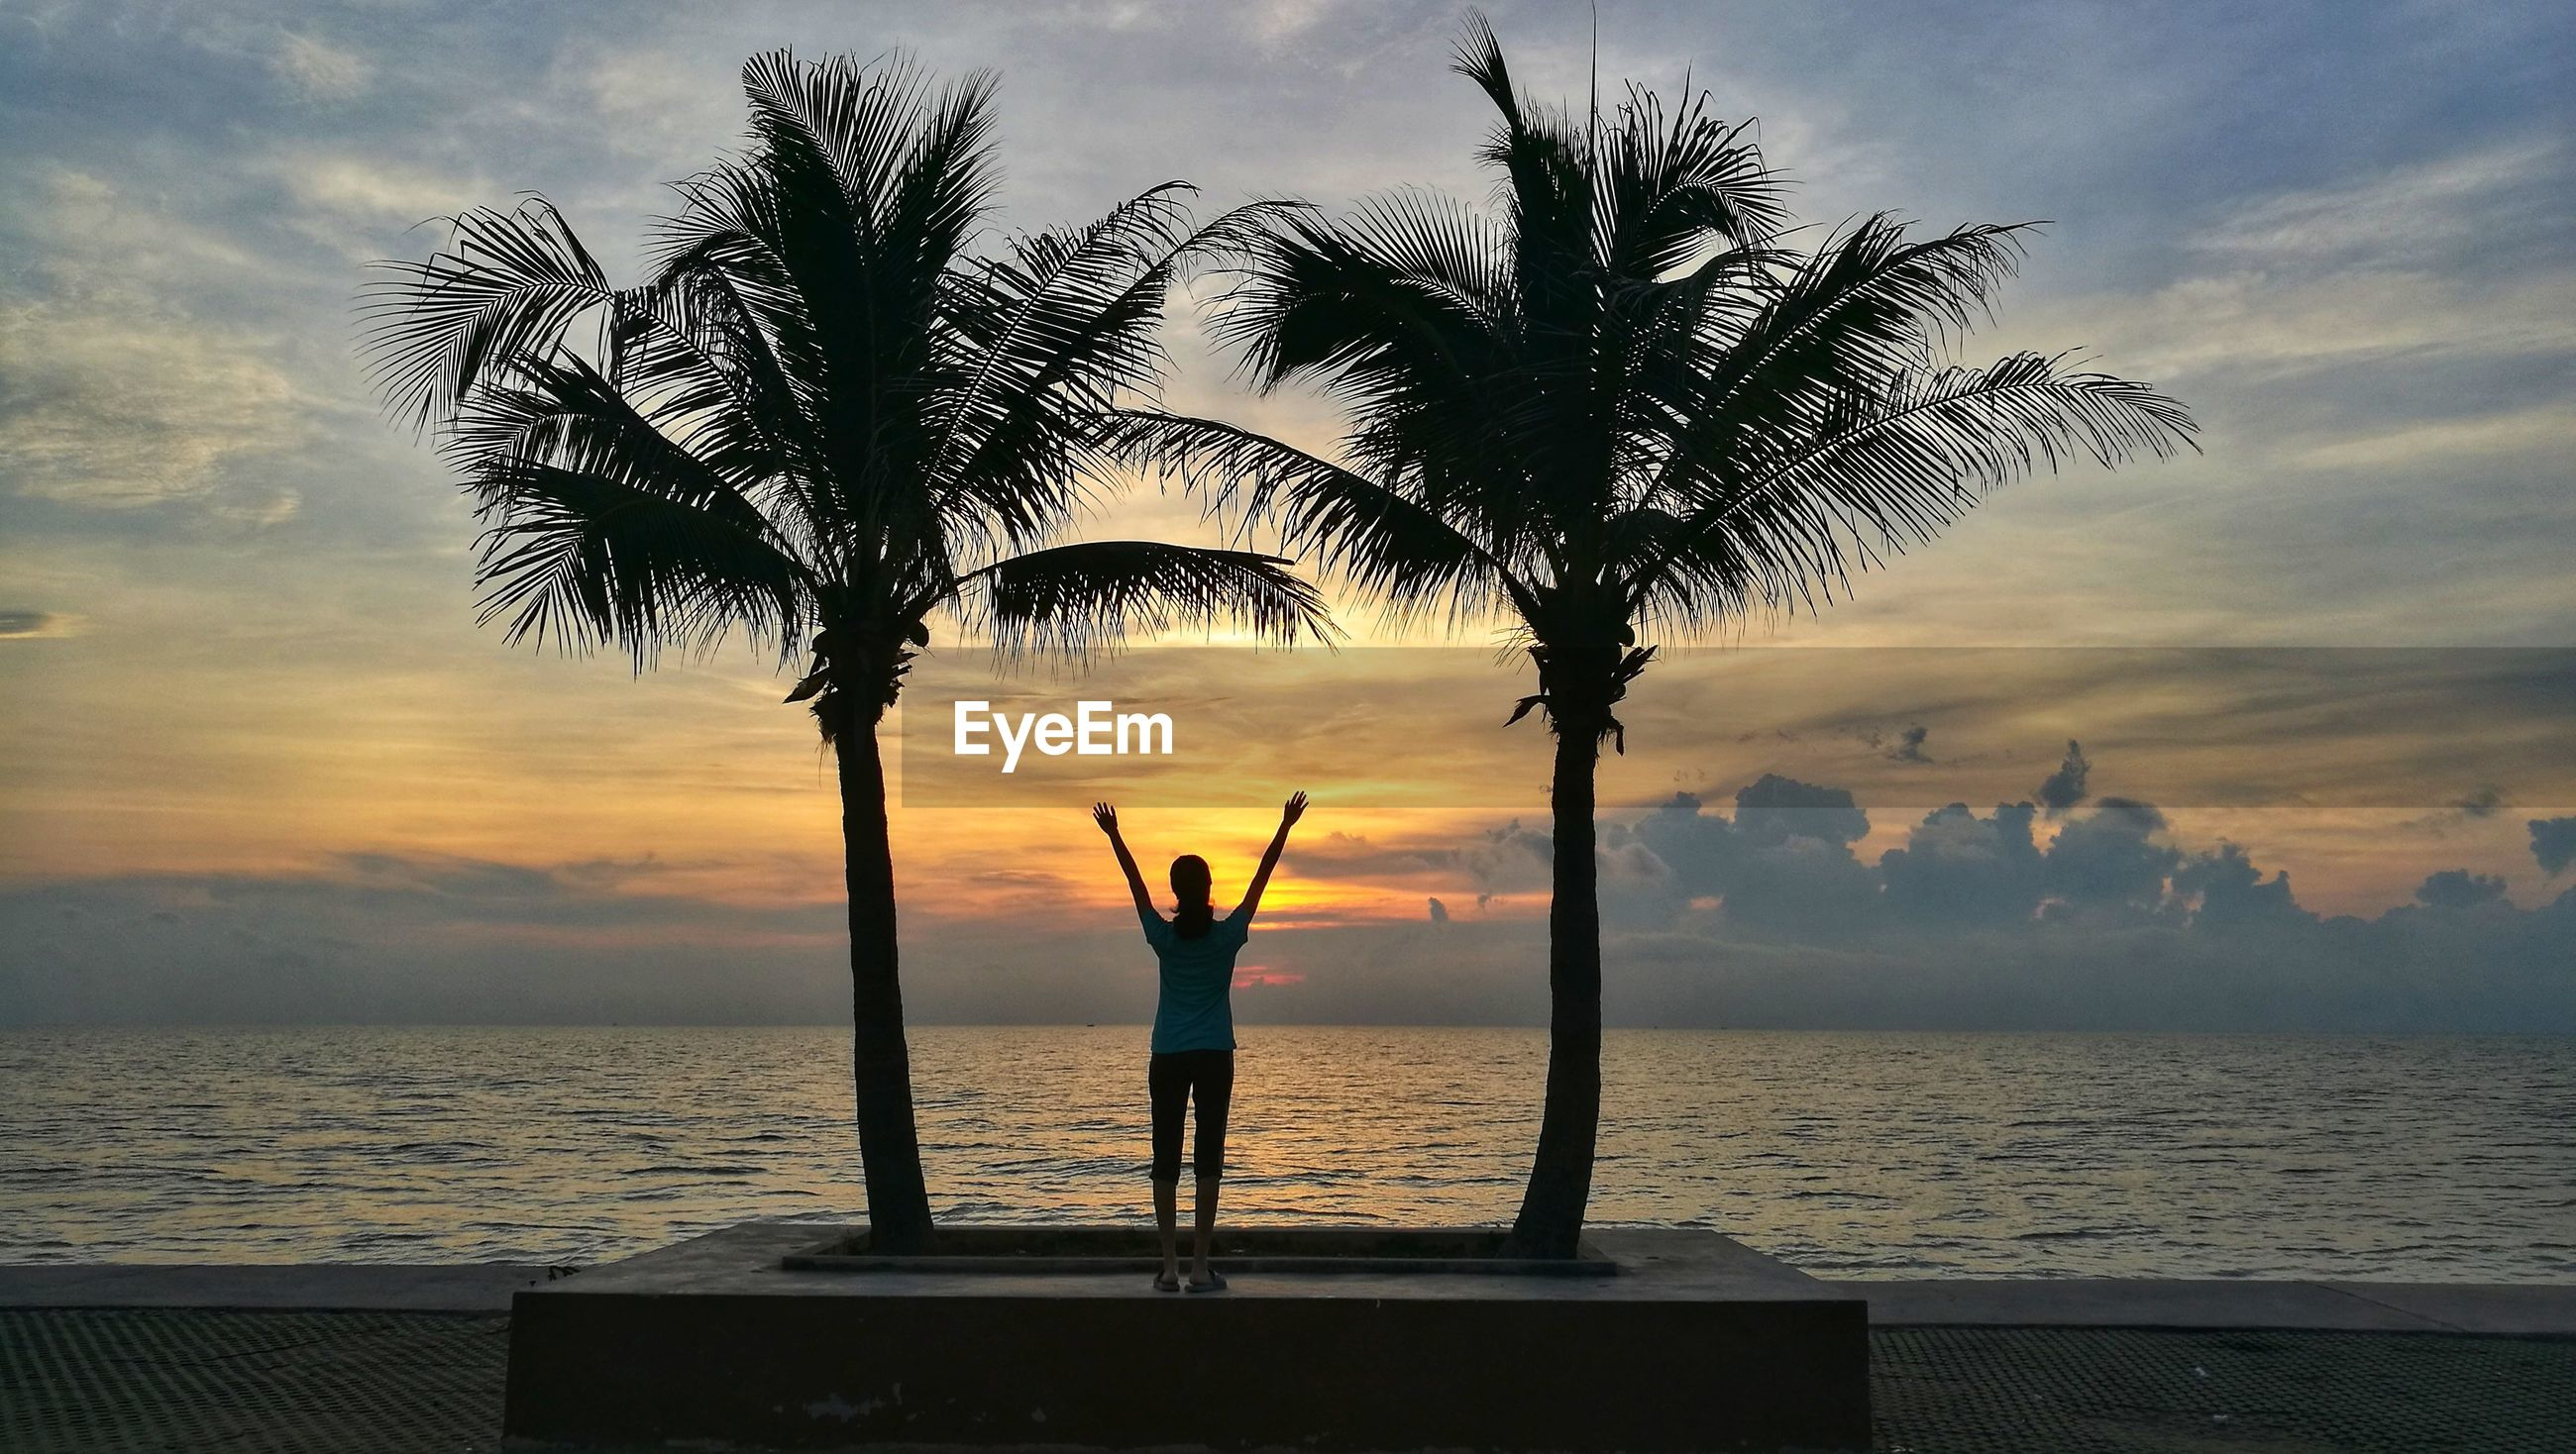 Rear view of girl standing by palm trees against sea and sky during sunset